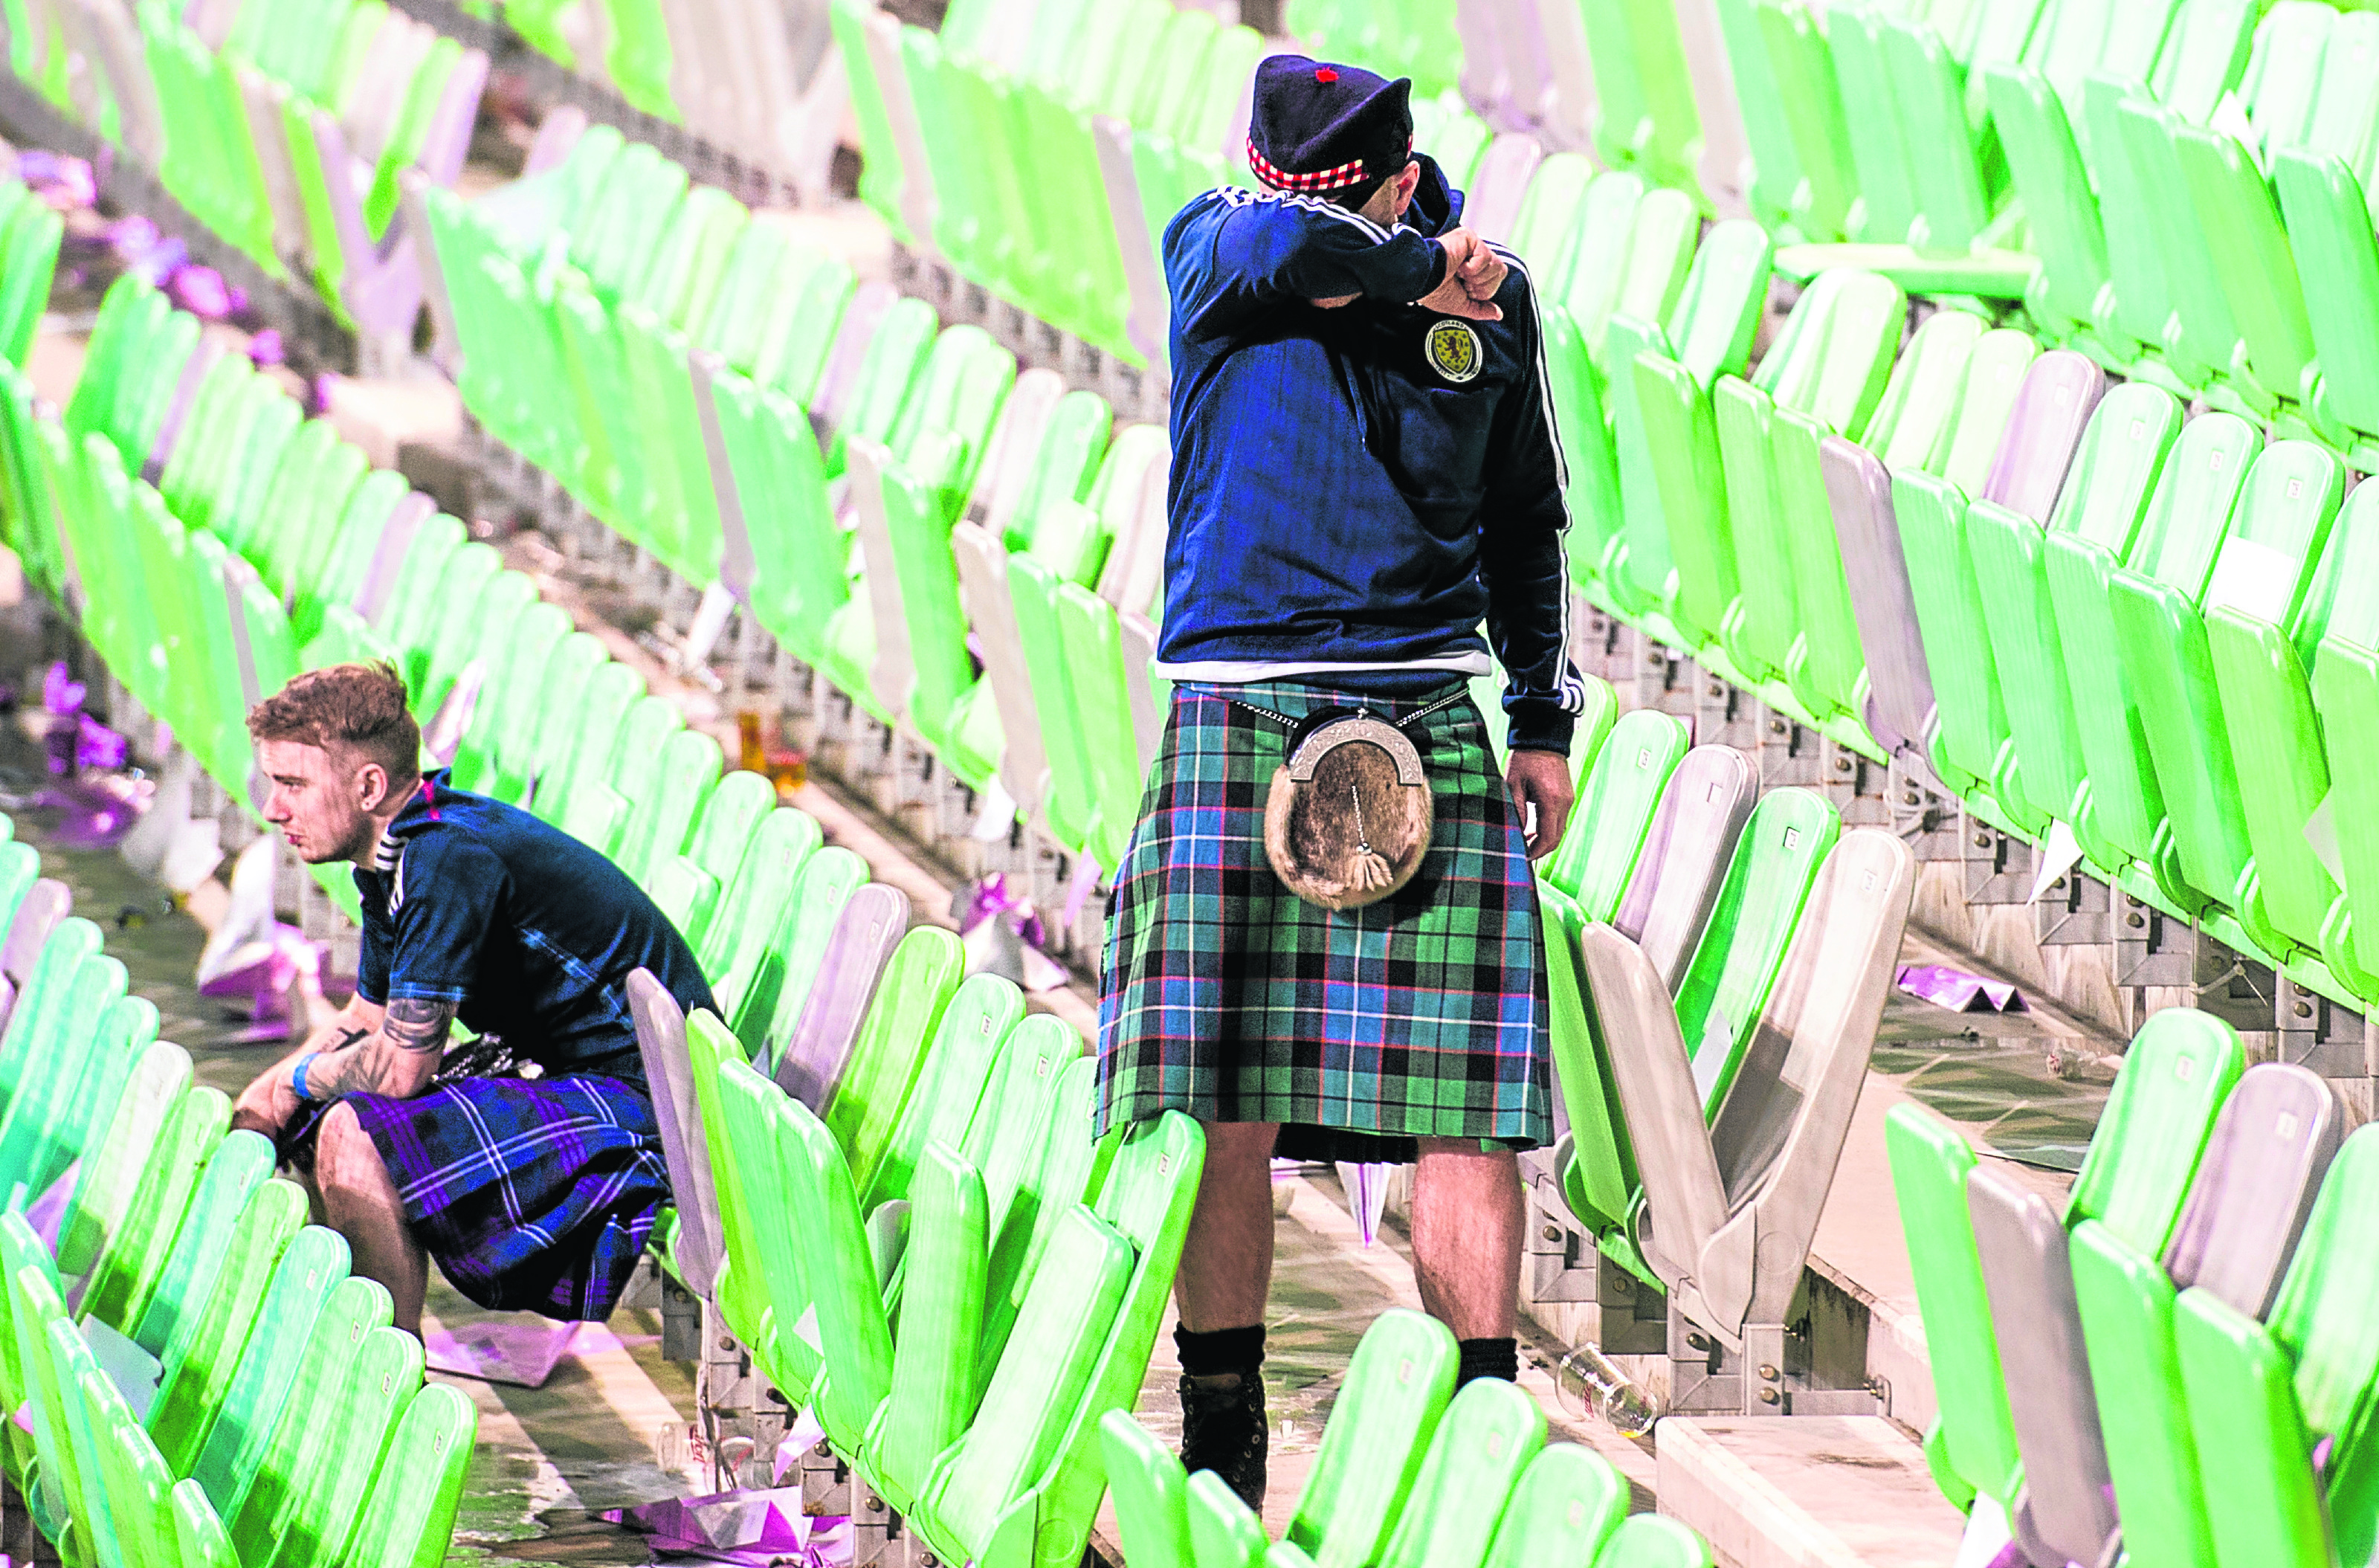 Scotland fans at full-time